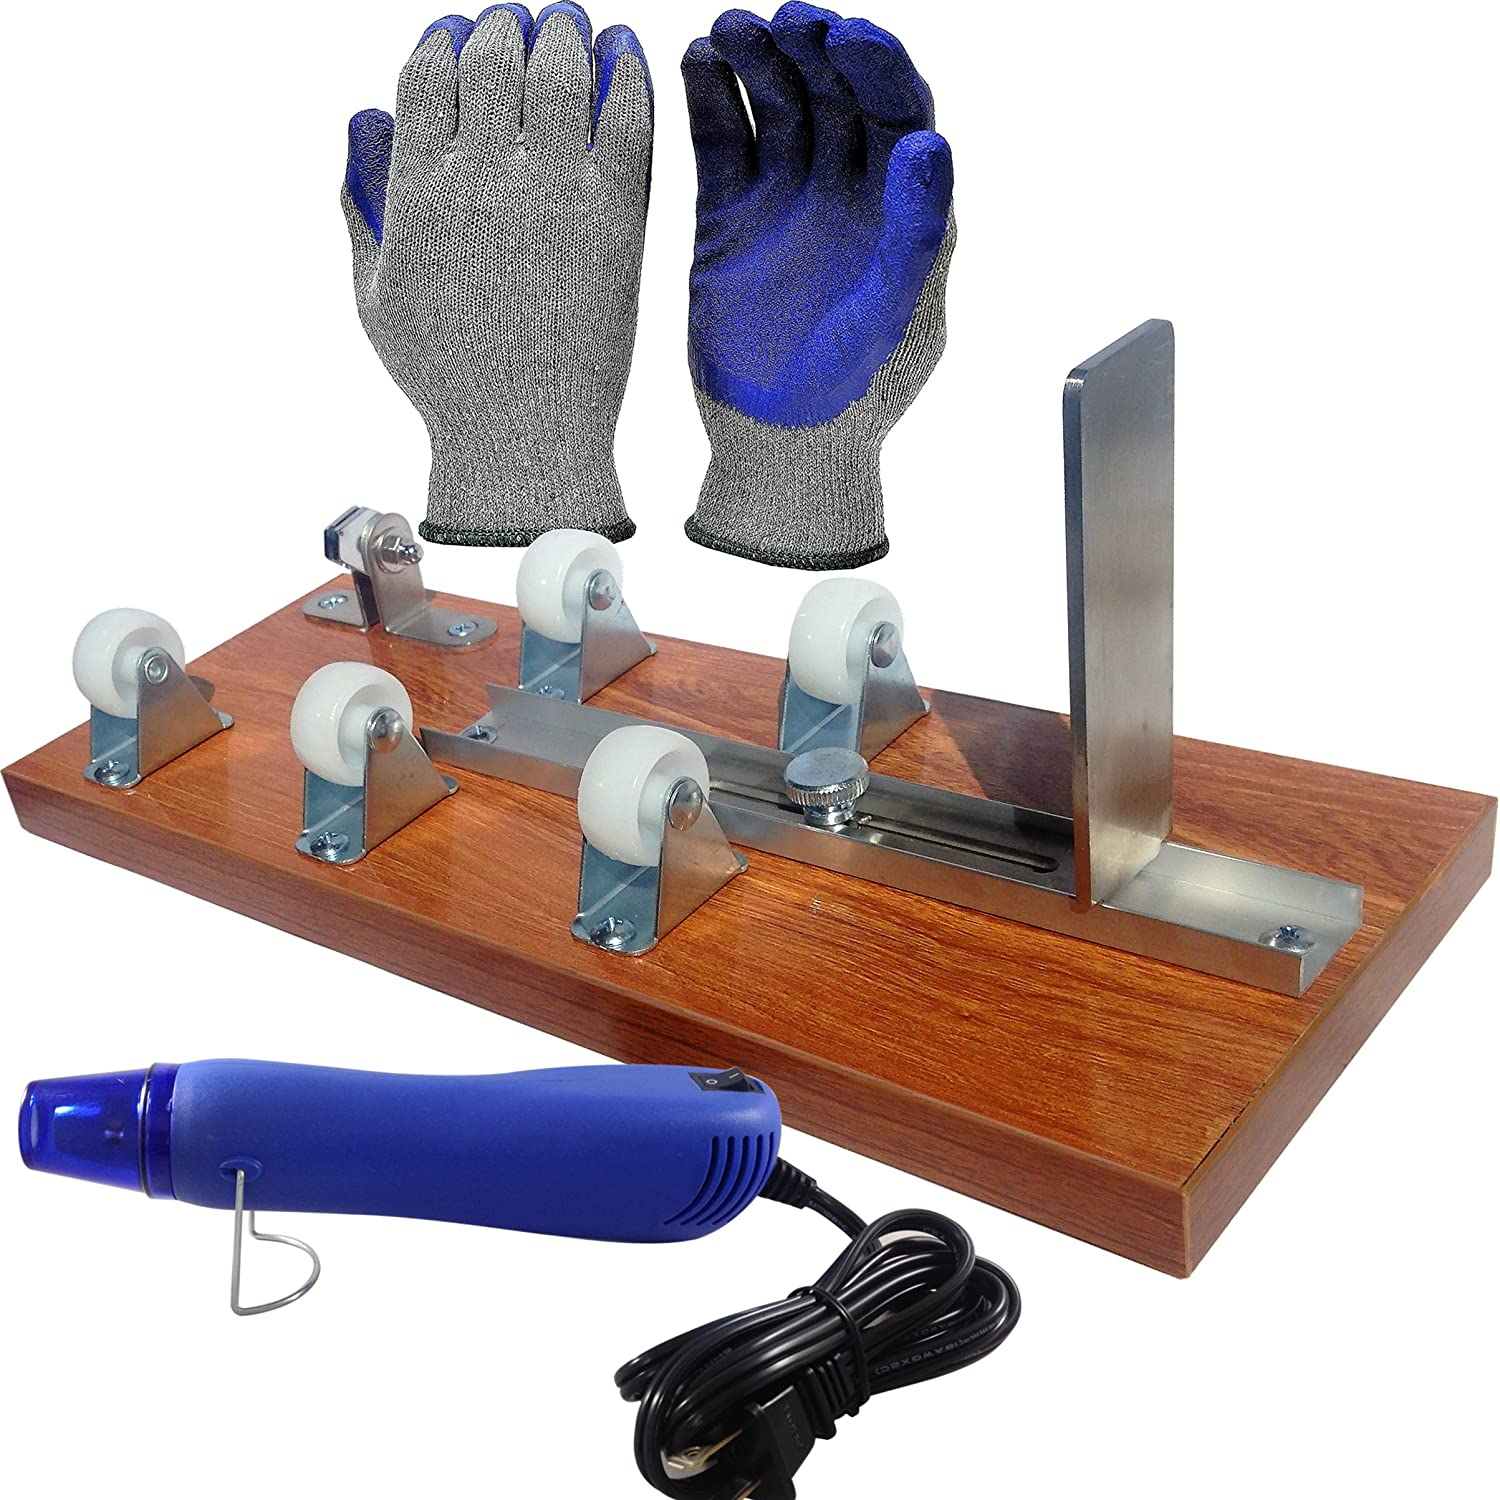 Glass Bottle Cutter, Upcycle EZ-Cut, Wine & Beer Bottle Cutting Machine Tool: Ultimate Kit + Heat Breaking Tool + Gloves + Sandpaper Upcycle EZ-Cut Bottle Cutter